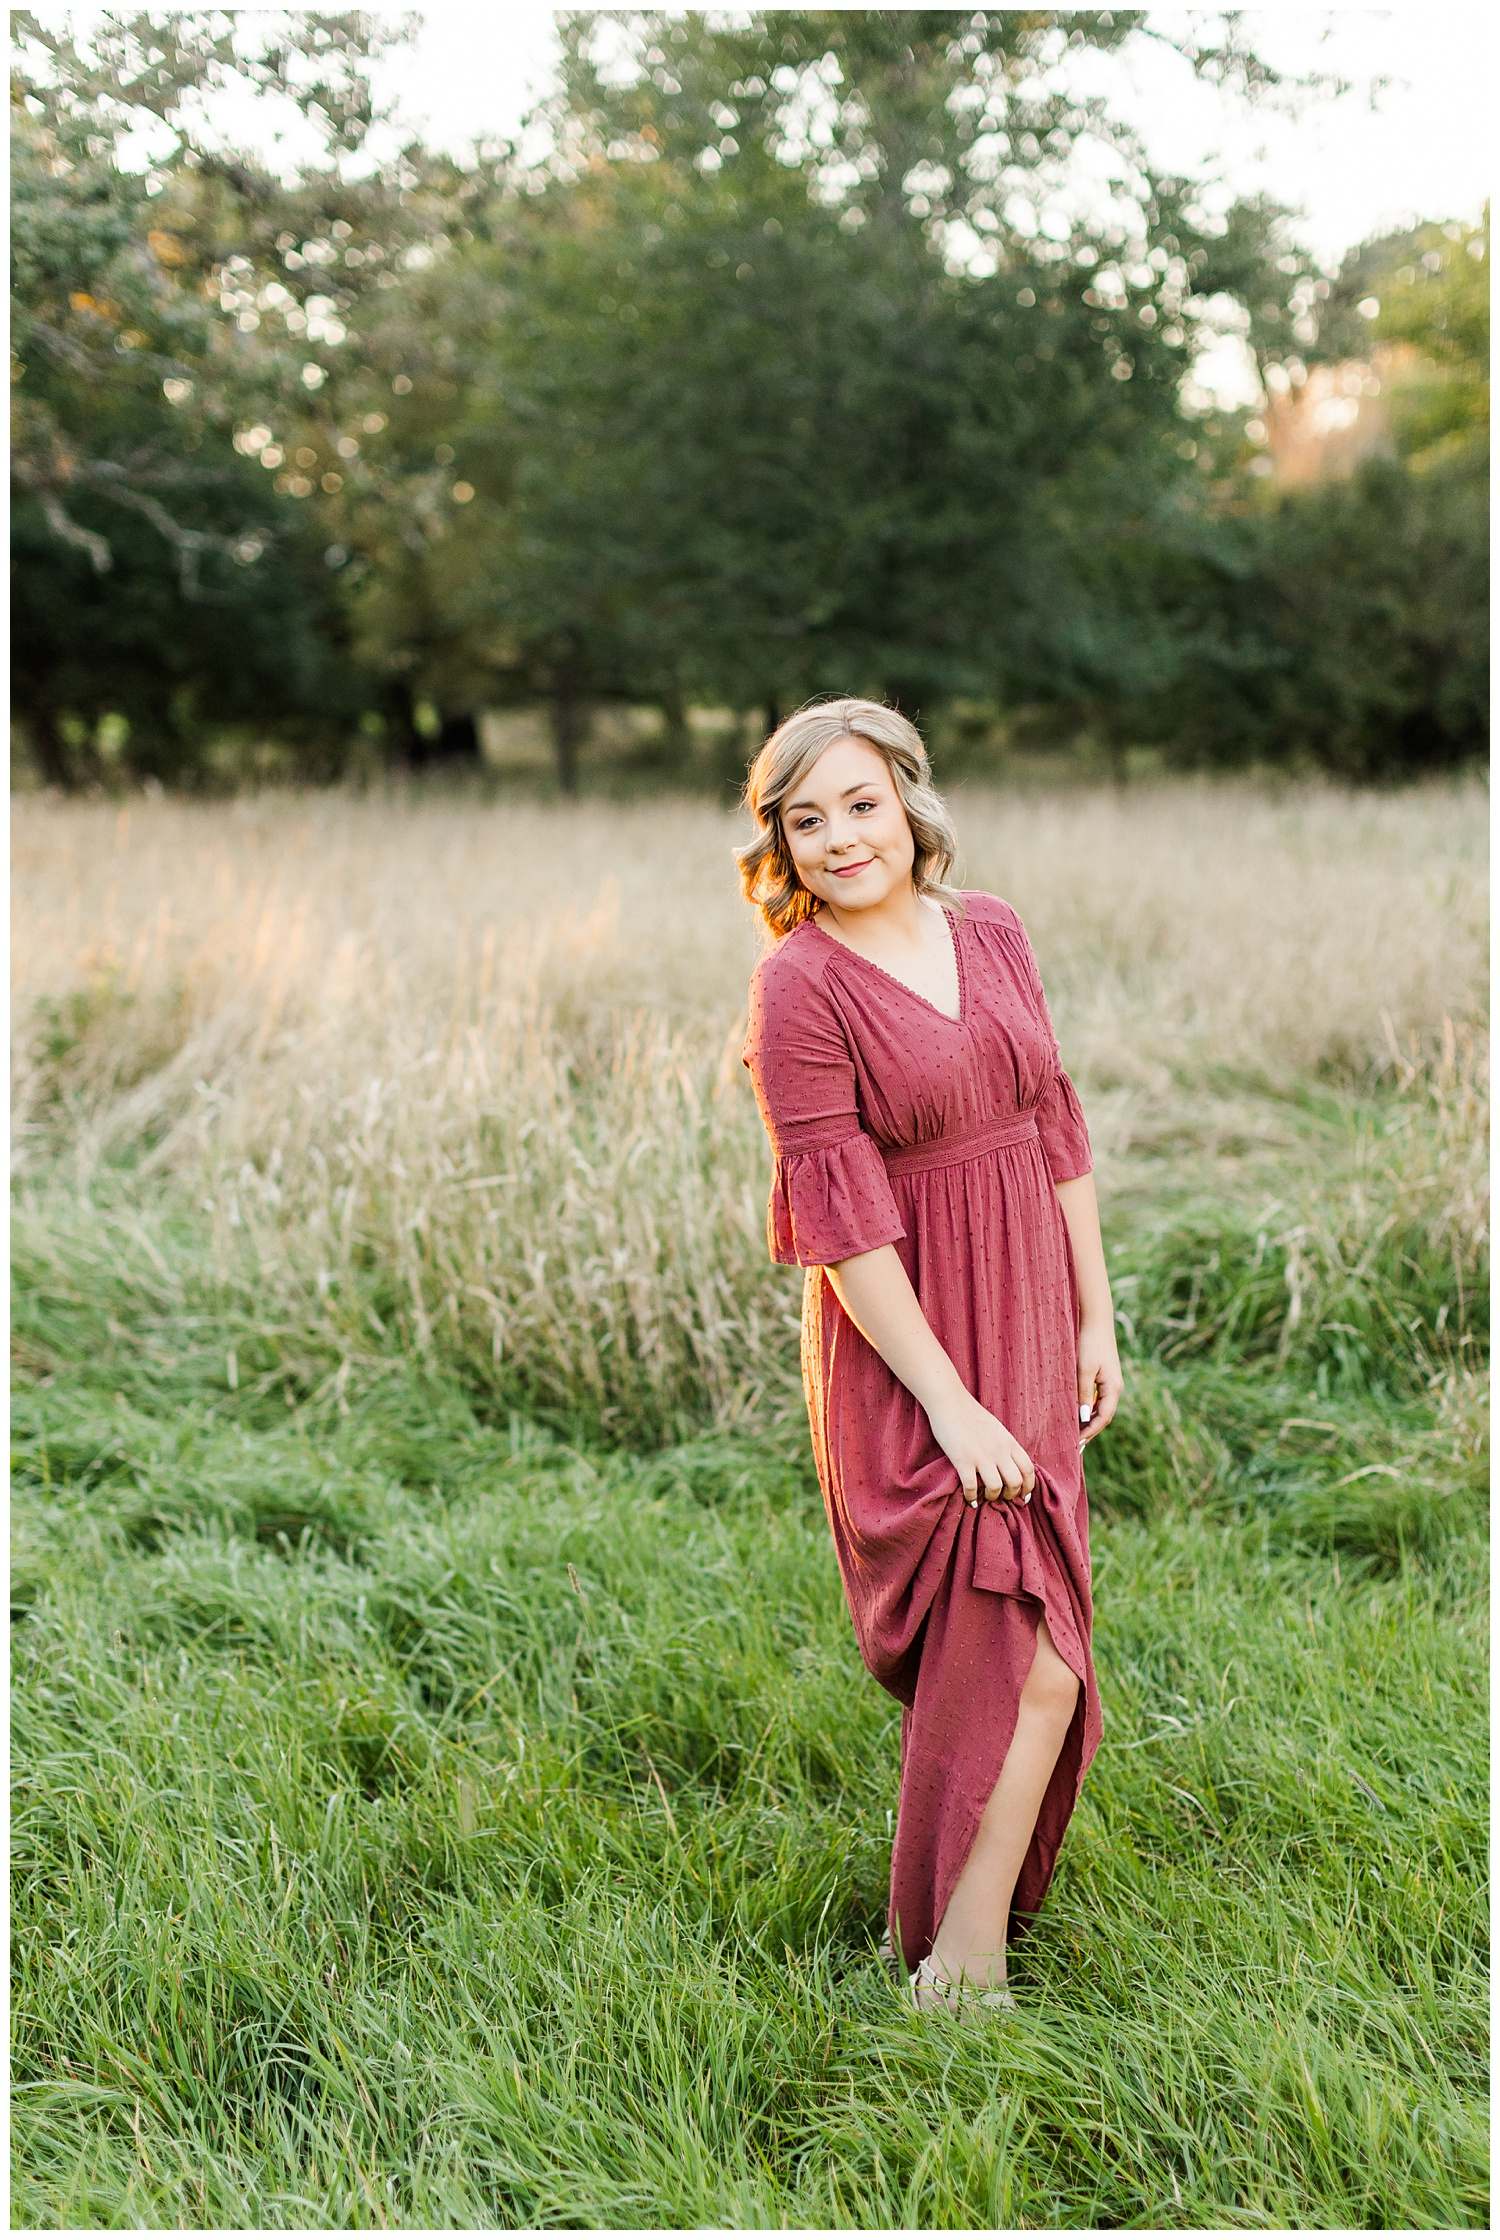 Cloey, wearing a vintage red dress, stands in a grassy pasture at golden hour   CB Studio